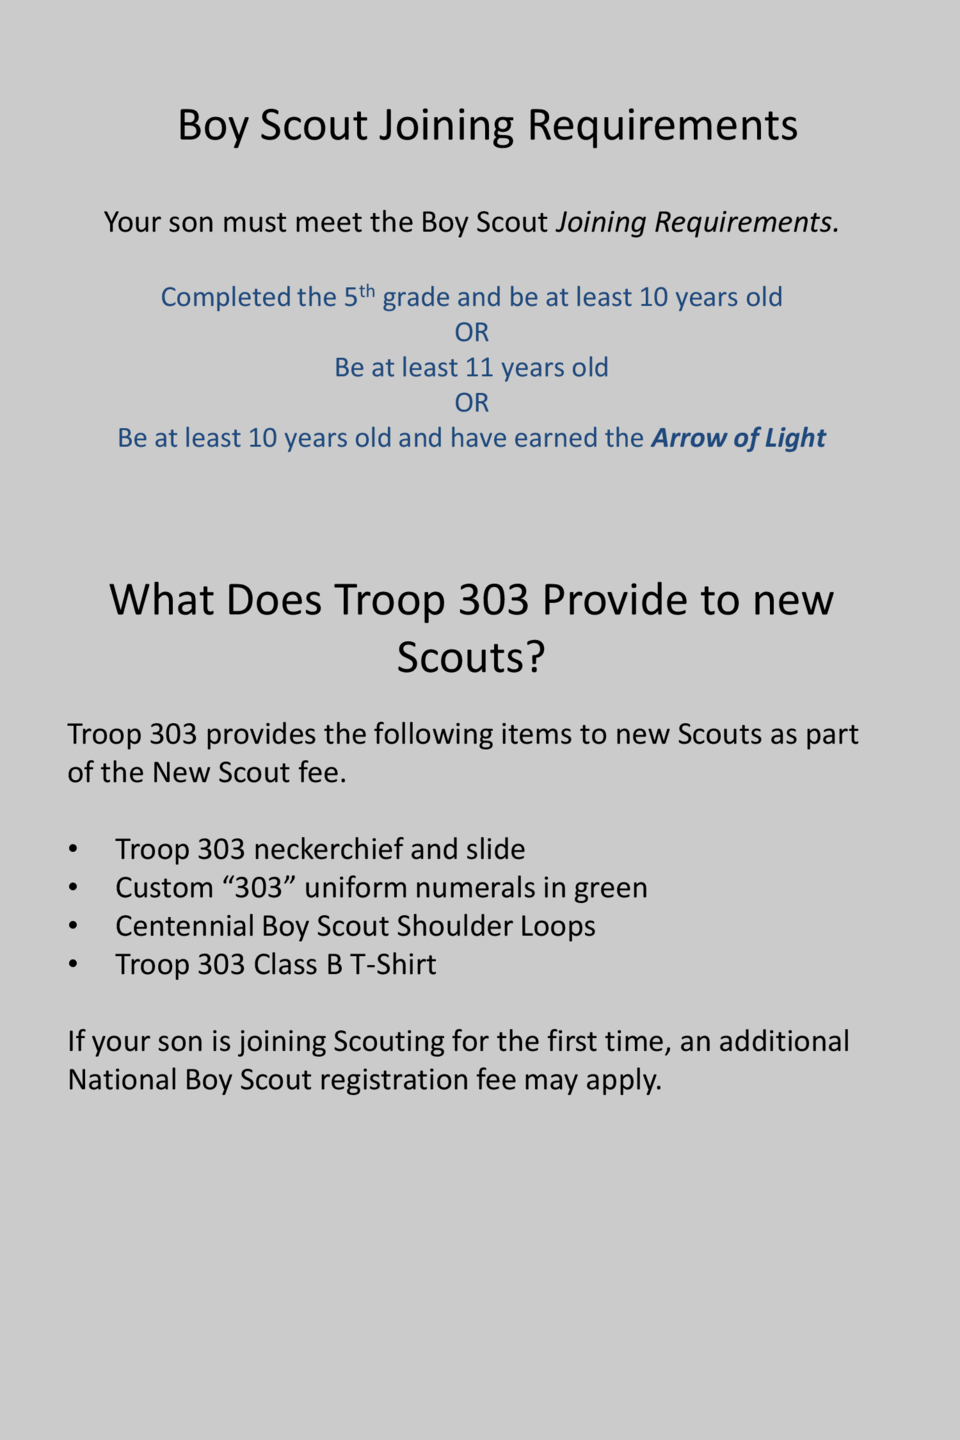 Boy Scout Joining Requirements Your son must meet the Boy Scout Joining Requirements. Completed the 5th grade and be at le...